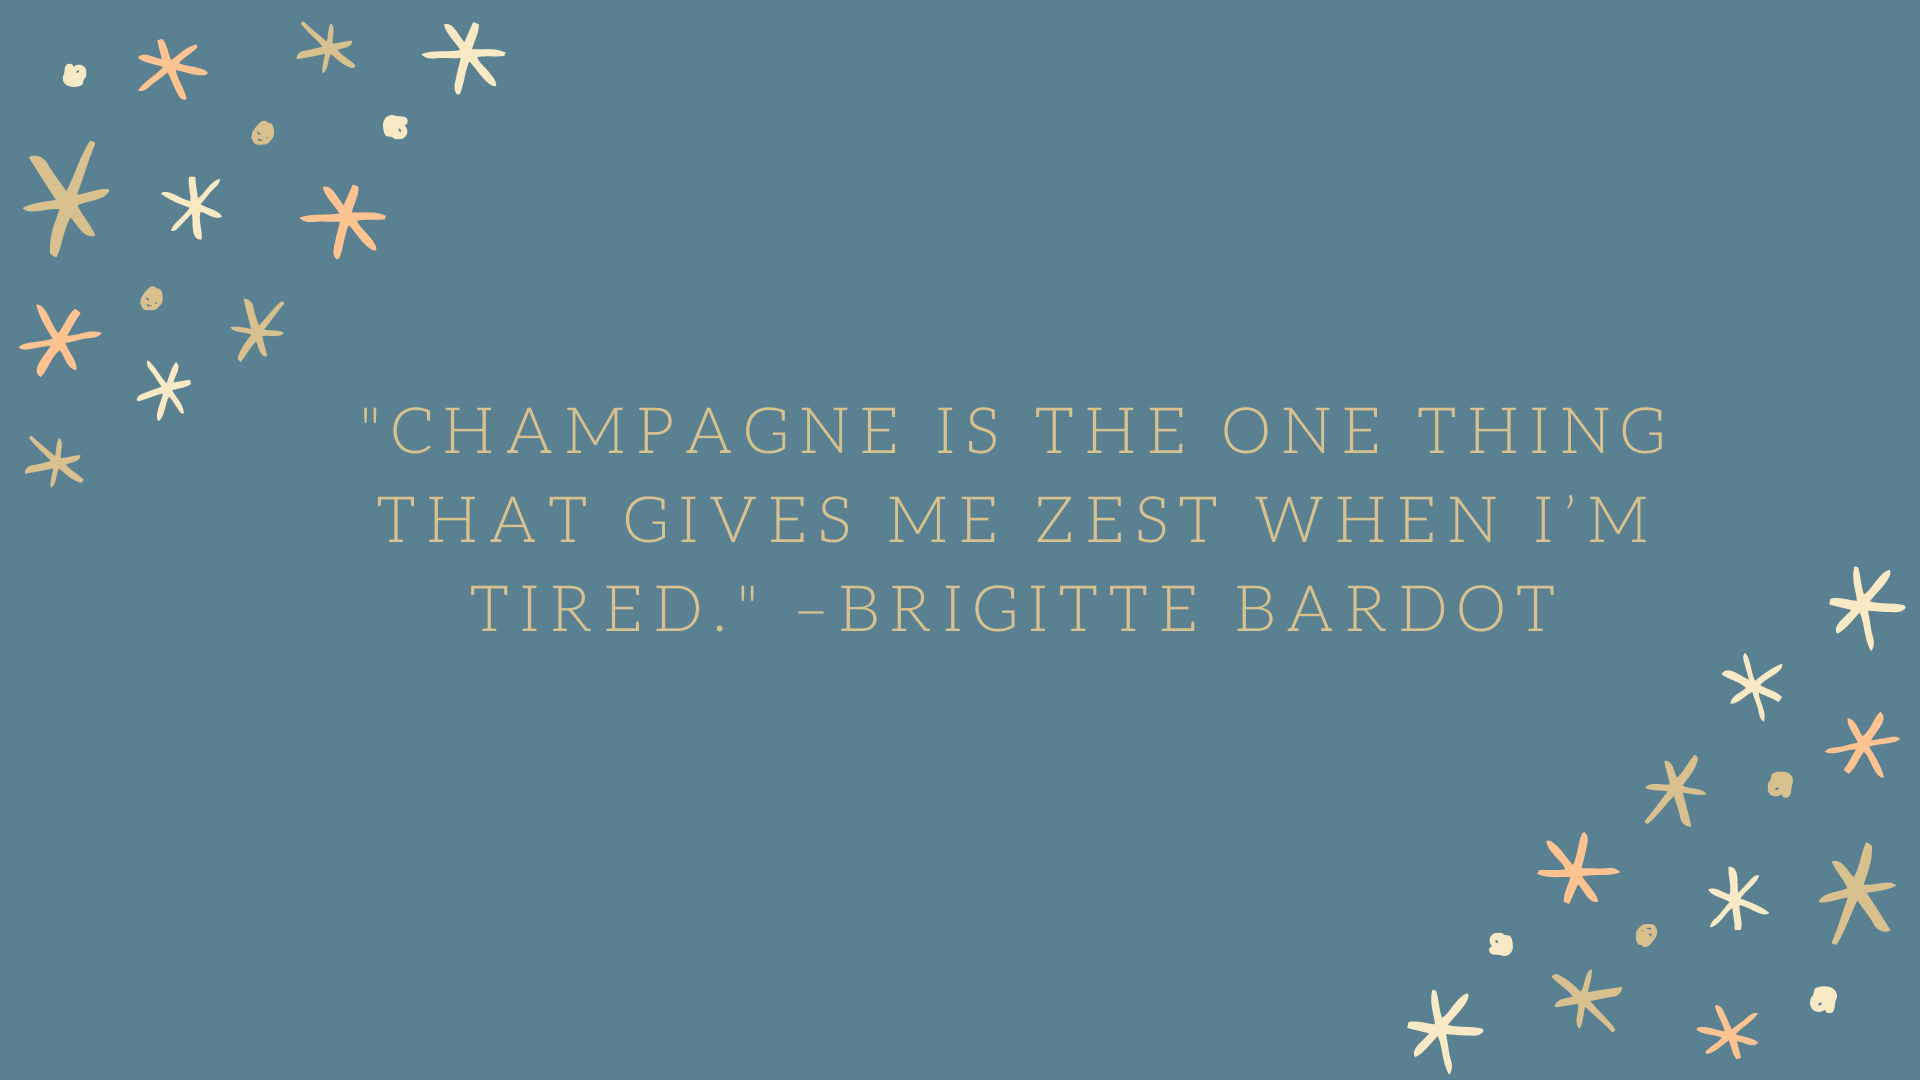 """Champagne is the one thing that gives me zest when I'm tired."" –Brigitte Bardot"